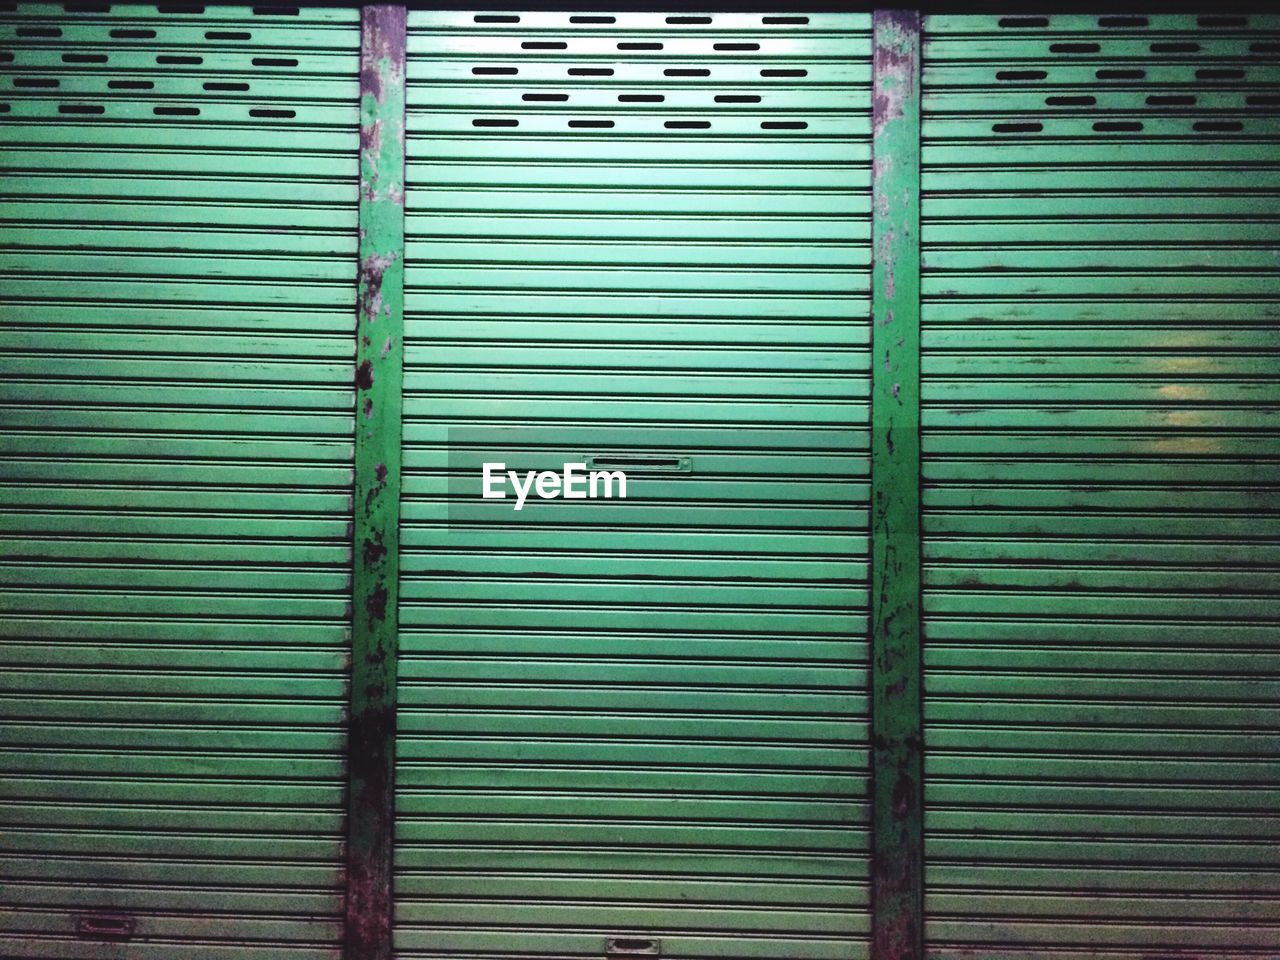 closed, pattern, shutter, security, backgrounds, corrugated iron, safety, full frame, striped, protection, day, no people, textured, green color, store, outdoors, architecture, close-up